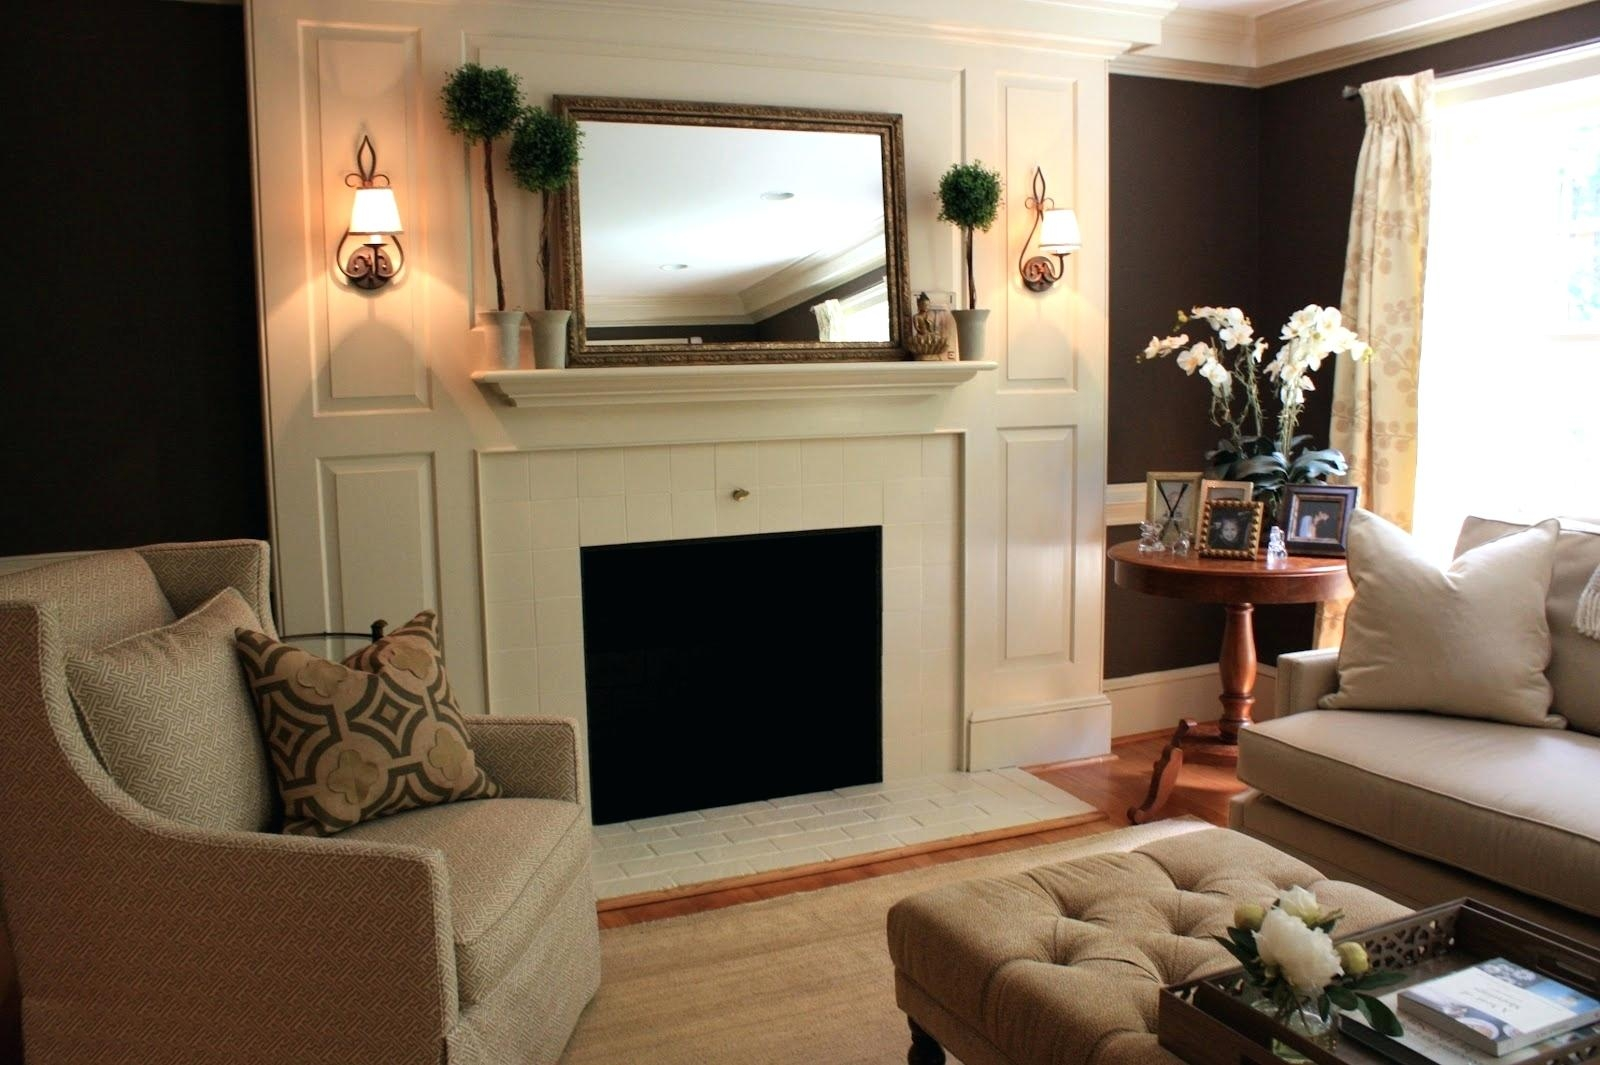 Mirror Fireplace Surround Pitchloveco With Large Mantel Mirror (Image 13 of 15)